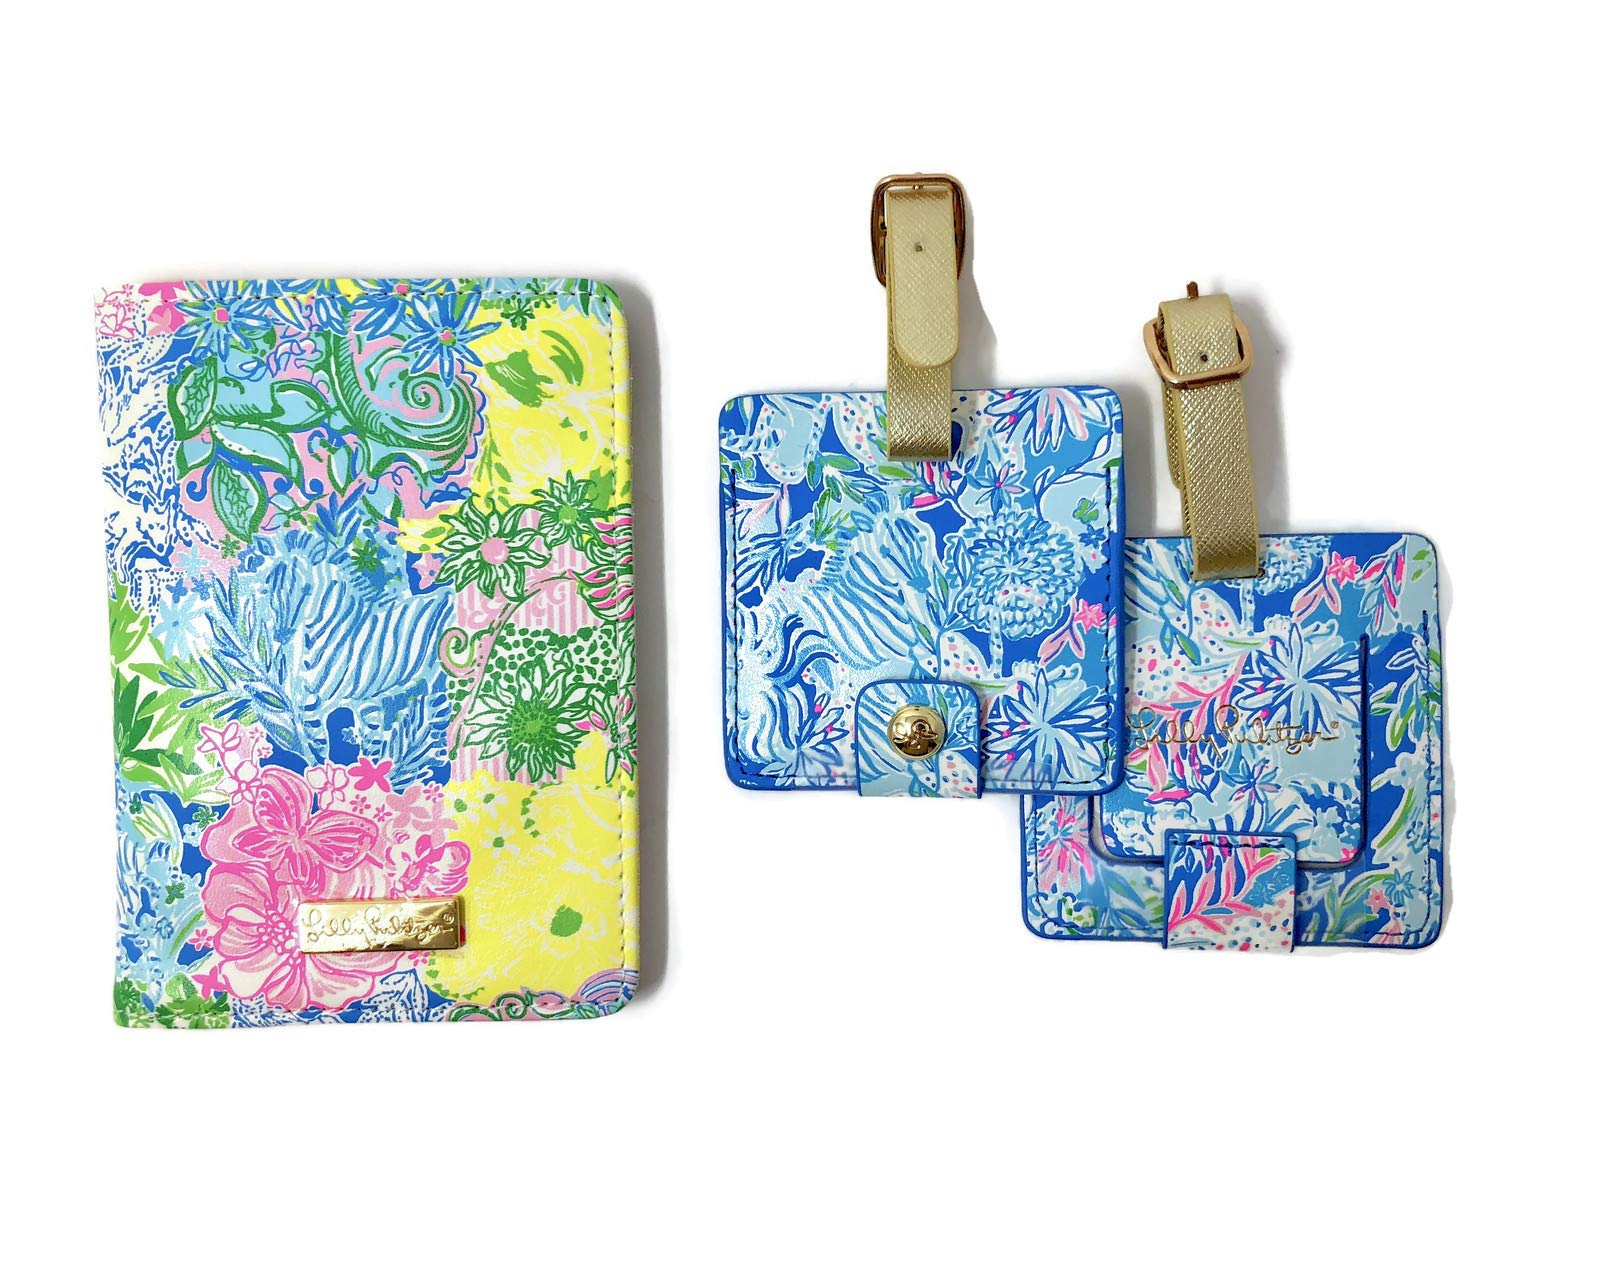 Lilly Pulitzer Travel Set, Leatherette Passport Cover/Holder/Wallet and 2 Luggage Tags, Cheek to Cheek by Lilly Pulitzer